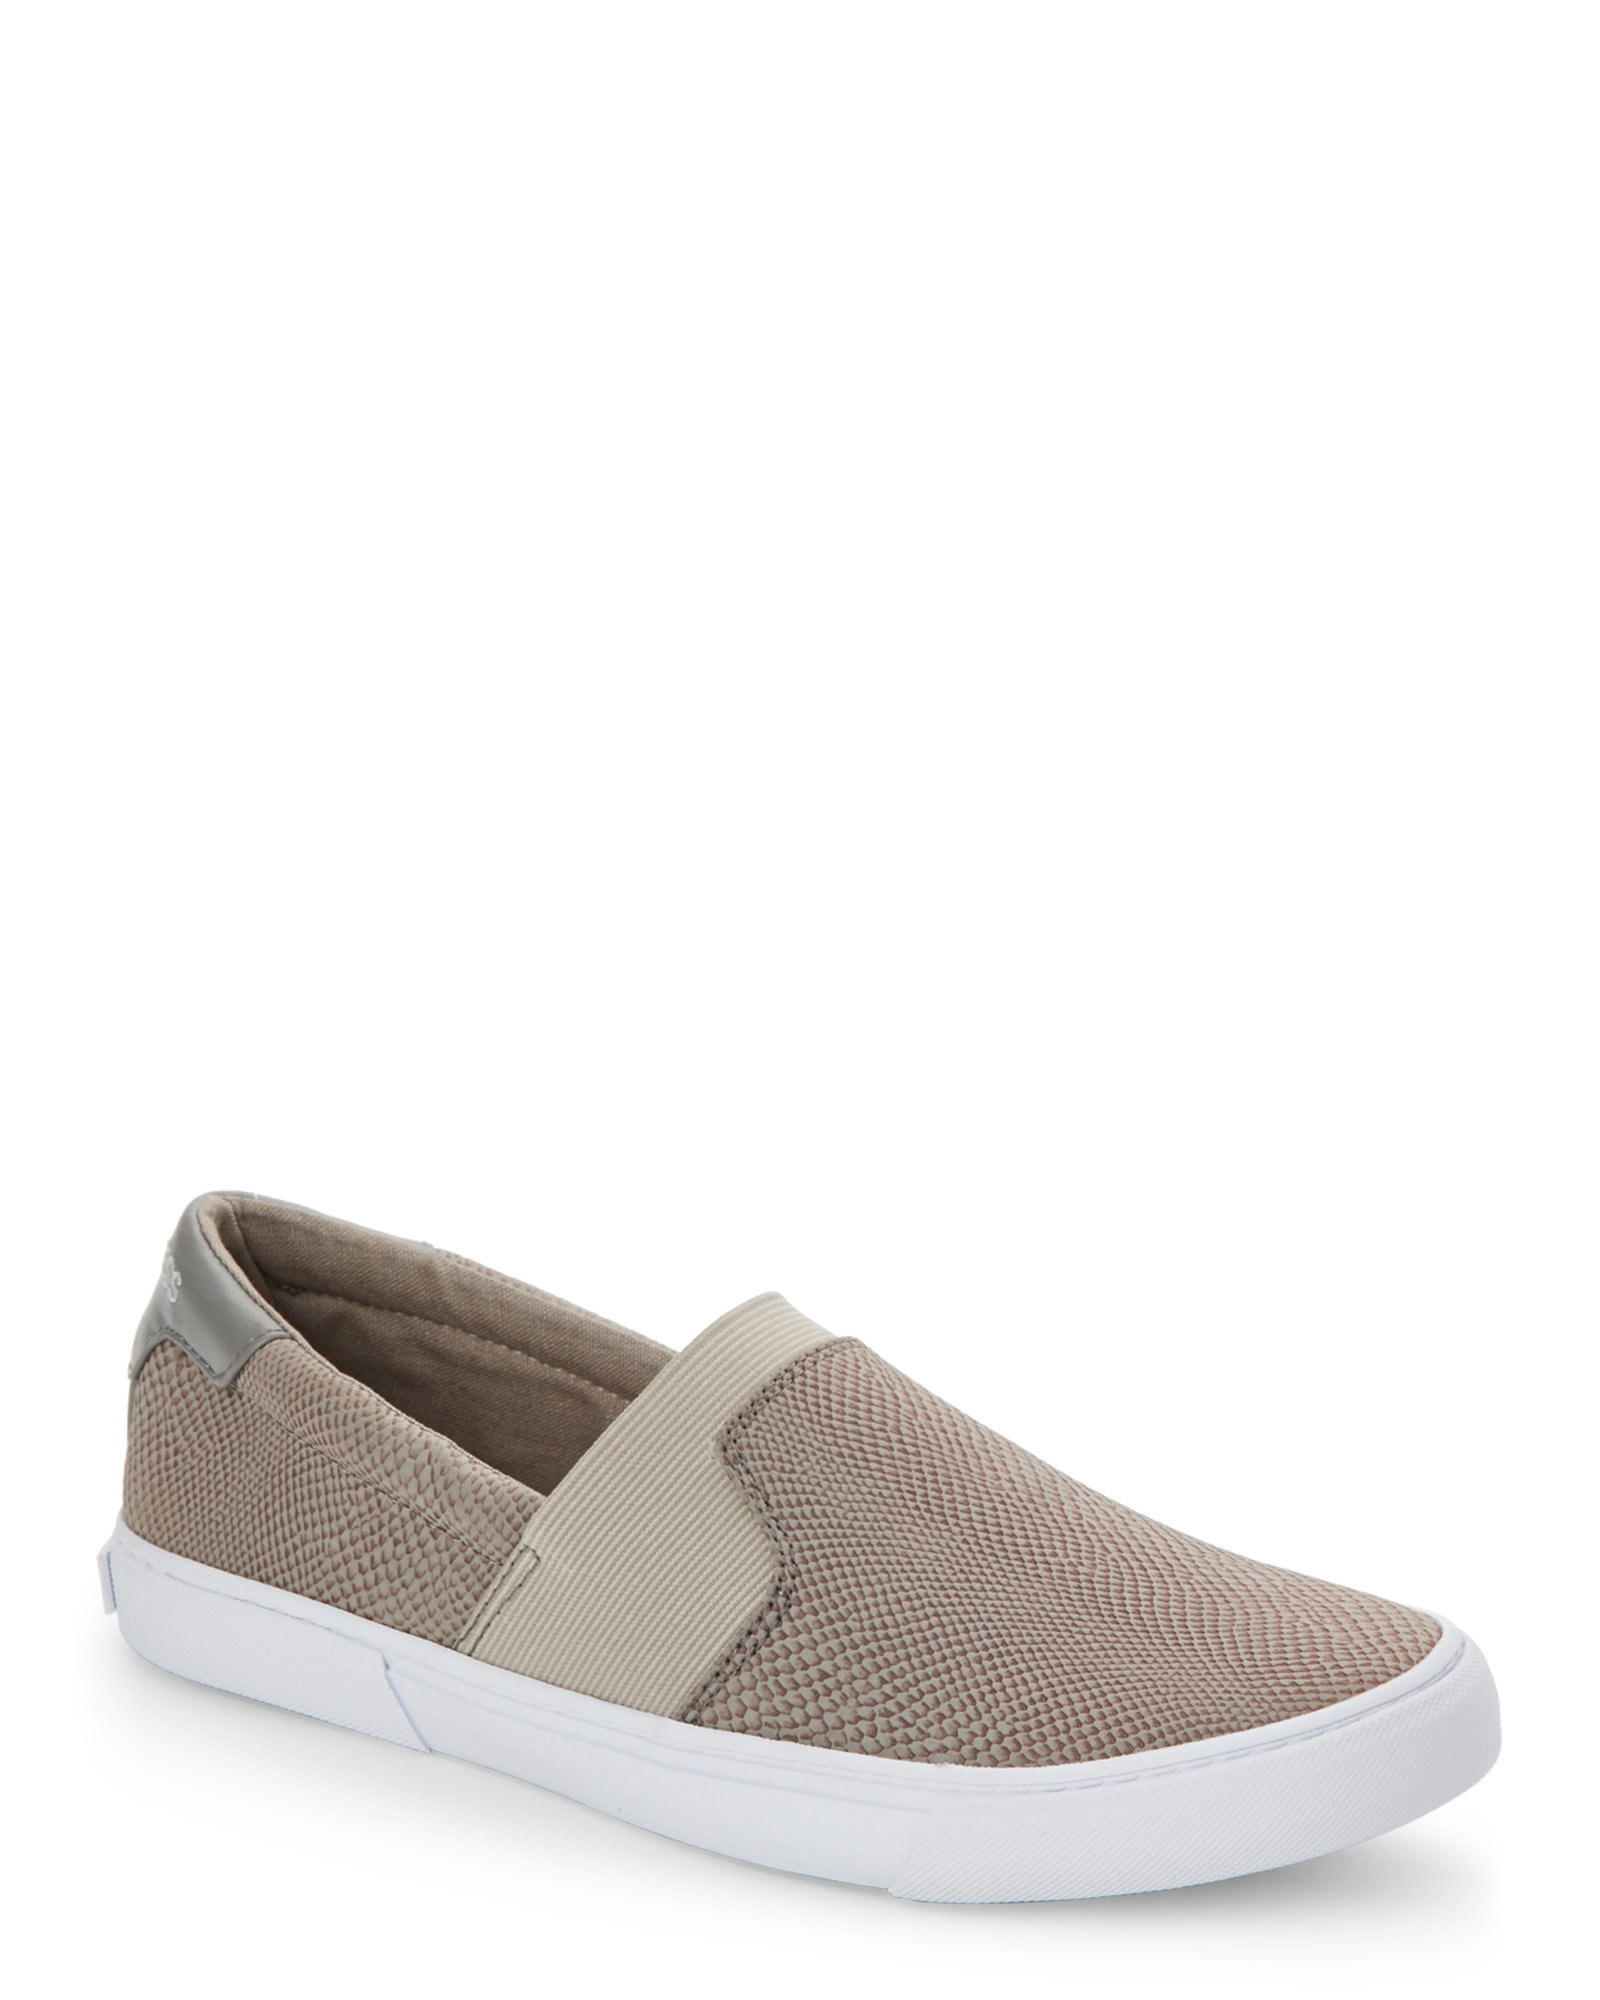 G by guess Grey Cruise Slip On Sneakers in Gray for Men | Lyst